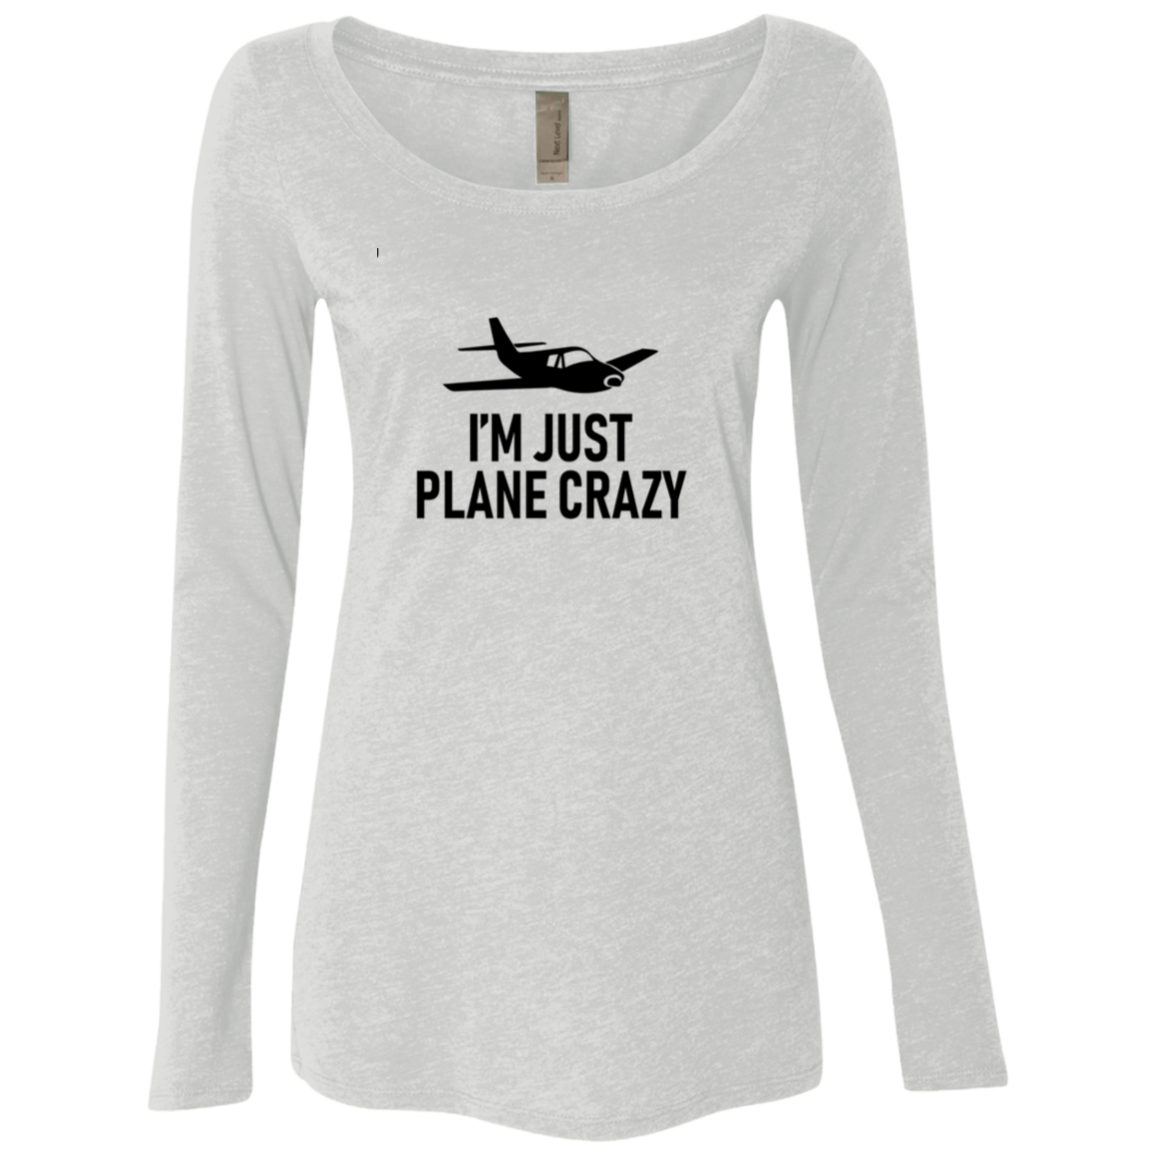 I'm Just Plane Crazy Women's Long Sleeve Tee